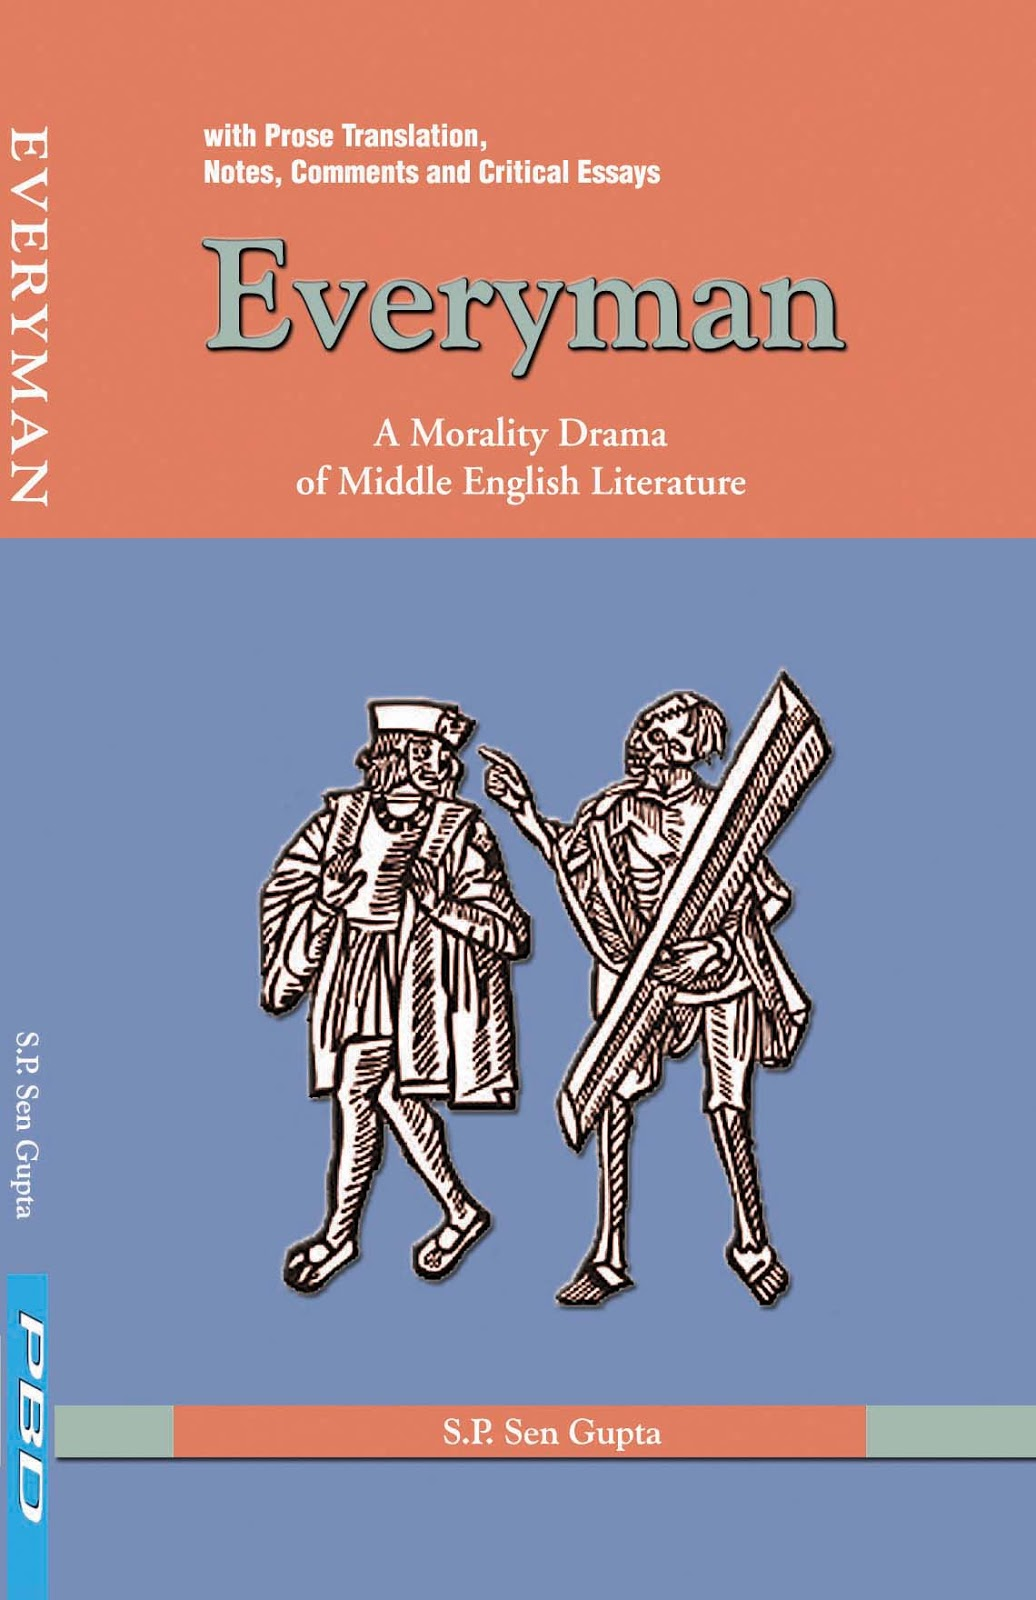 how to write a personal everyman essay goods does not care about going everyman because goods can just be passed on to someone else everyman essay let us help your master thesis